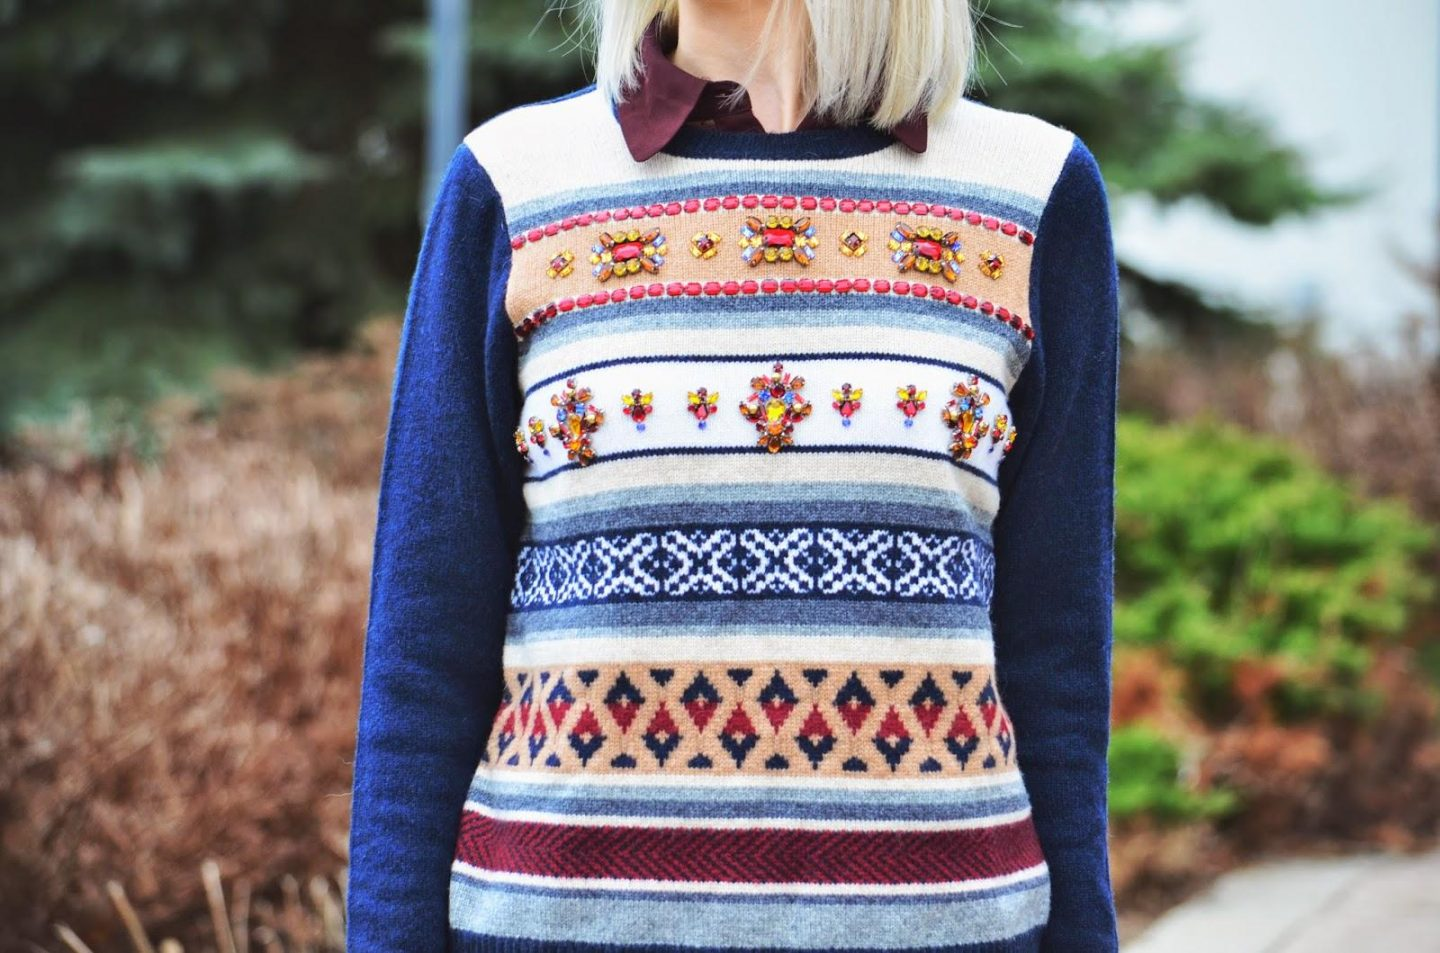 Style, fair isle, sweater, J. Crew, Kate Spade, Kate Spade bag, black and brown, casual Friday, fair isle sweater, fair isle sweater style, jcrew style